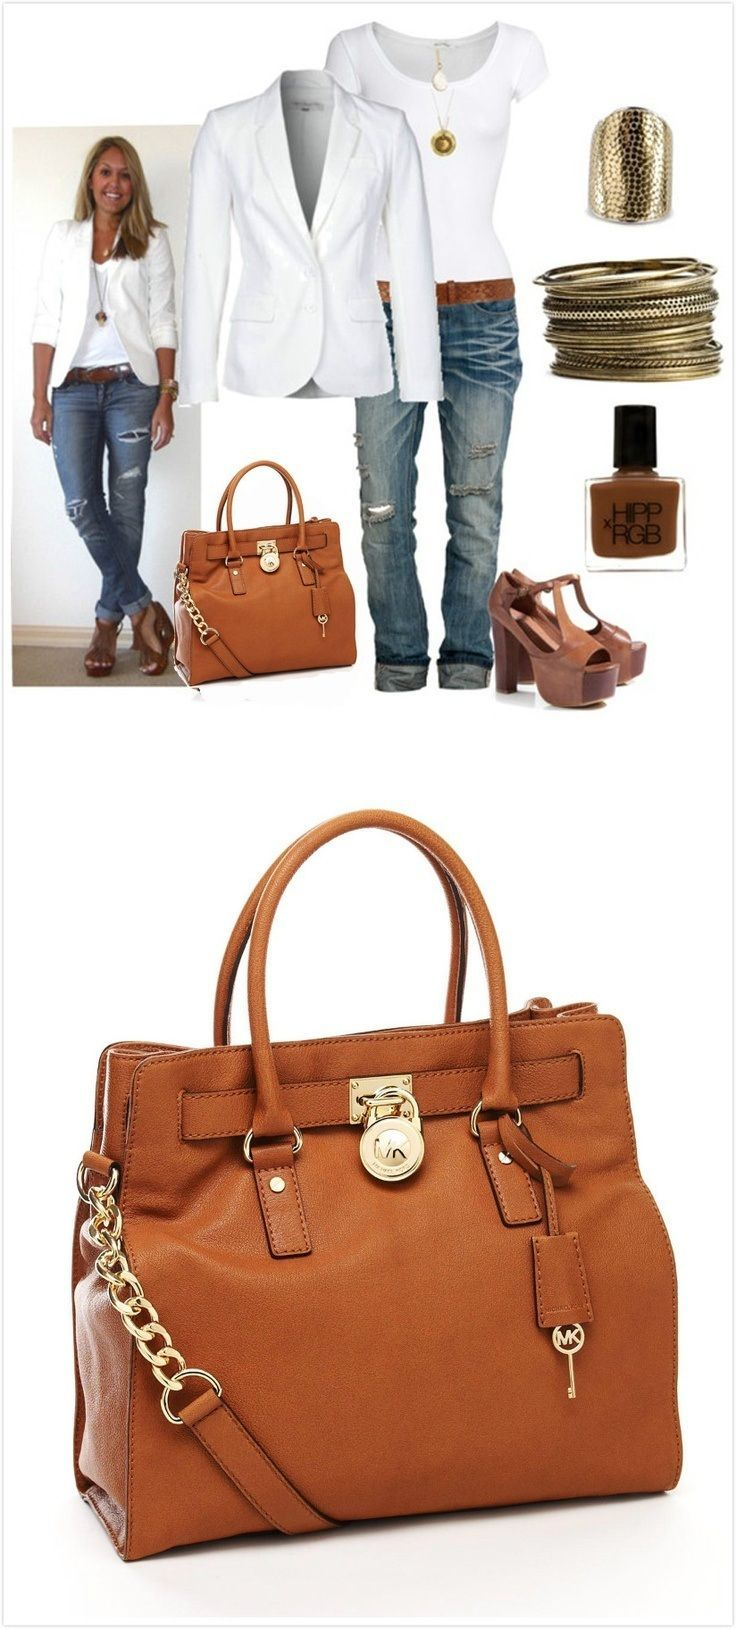 New York Fashion,Wholesale Michael kors purses,Michael kors handbags,michael kors outlet online sale only $36 for new customers gift.